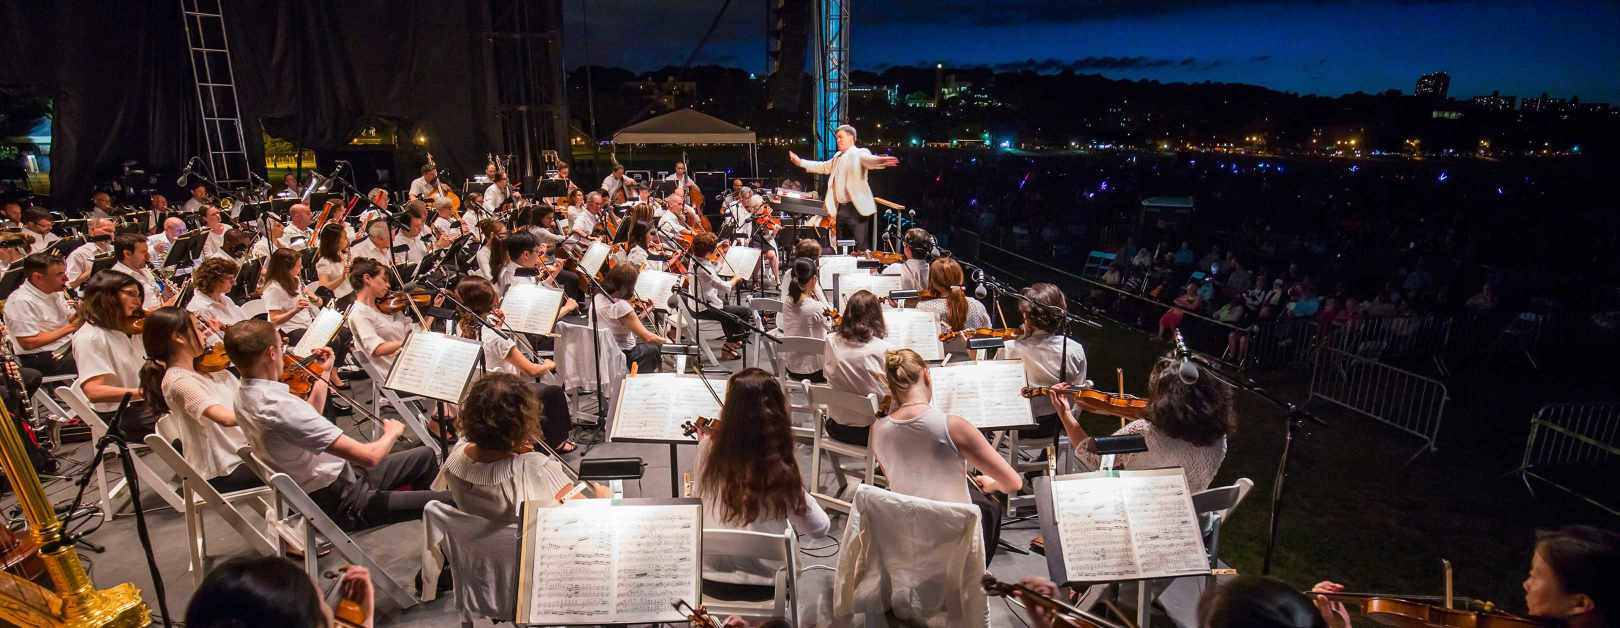 new york philharmonic concerts in the parks - van cortlandt park